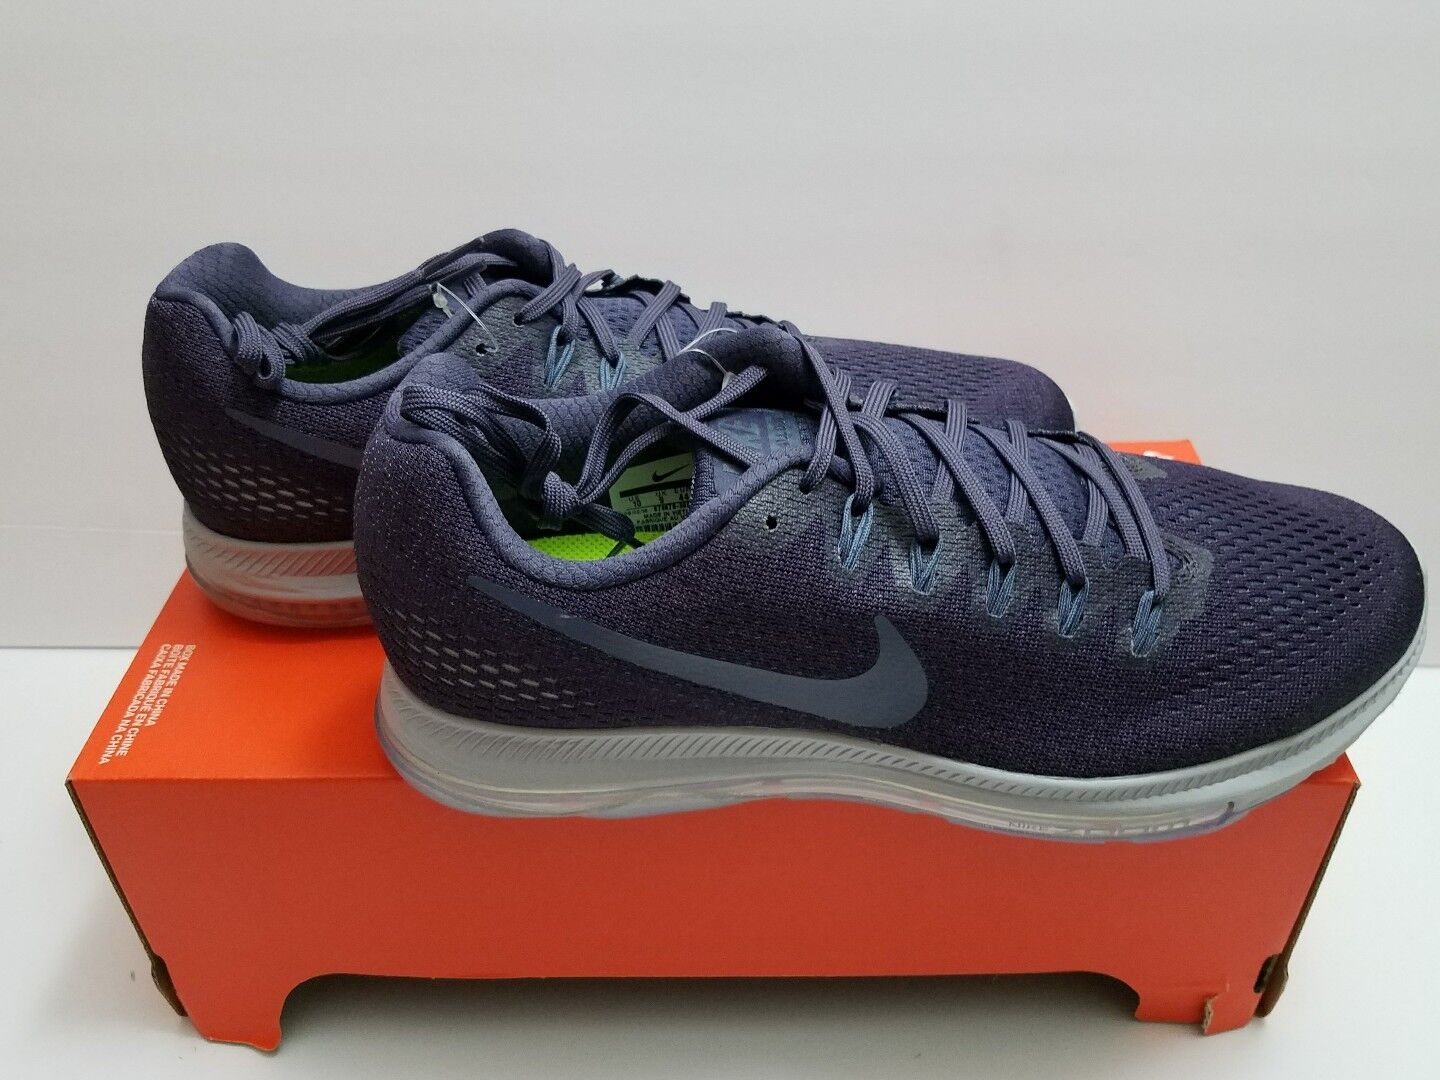 Nike Zoom Purple All Out Mens Running Shoes 10 Grand Purple Zoom Pure Platinum 878670 500 a6644d